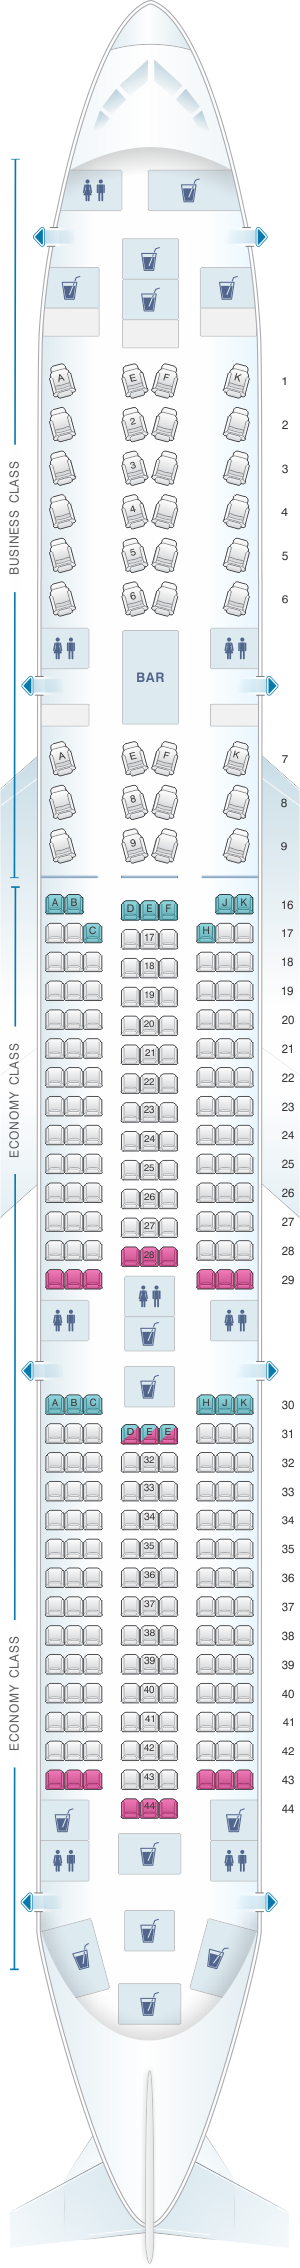 Seat map for Qatar Airways Airbus A350 900 283pax